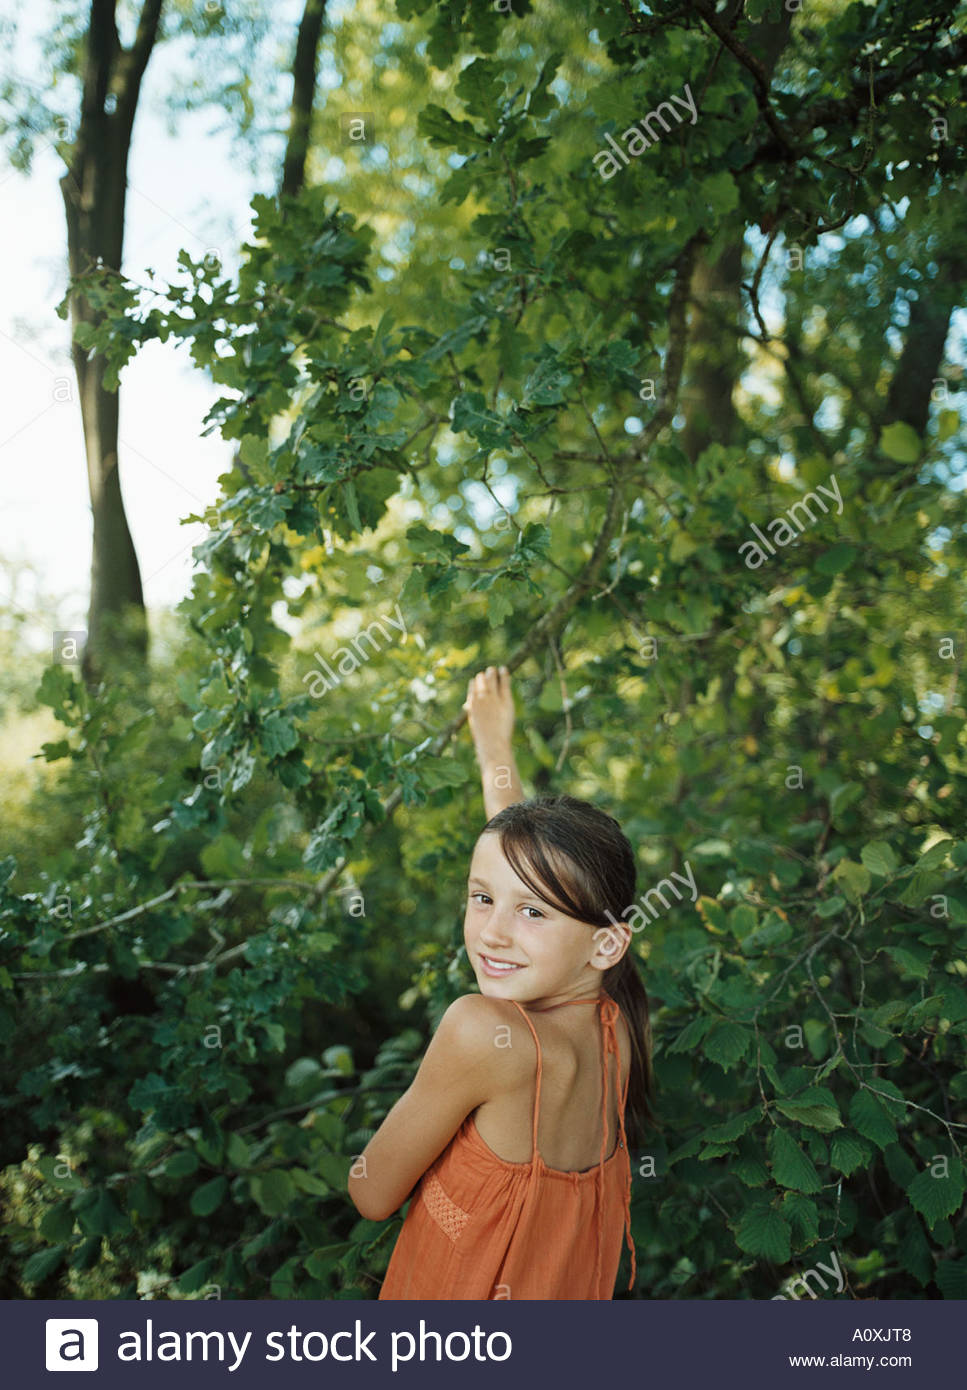 Girl reaching up to tree branch - Stock Image